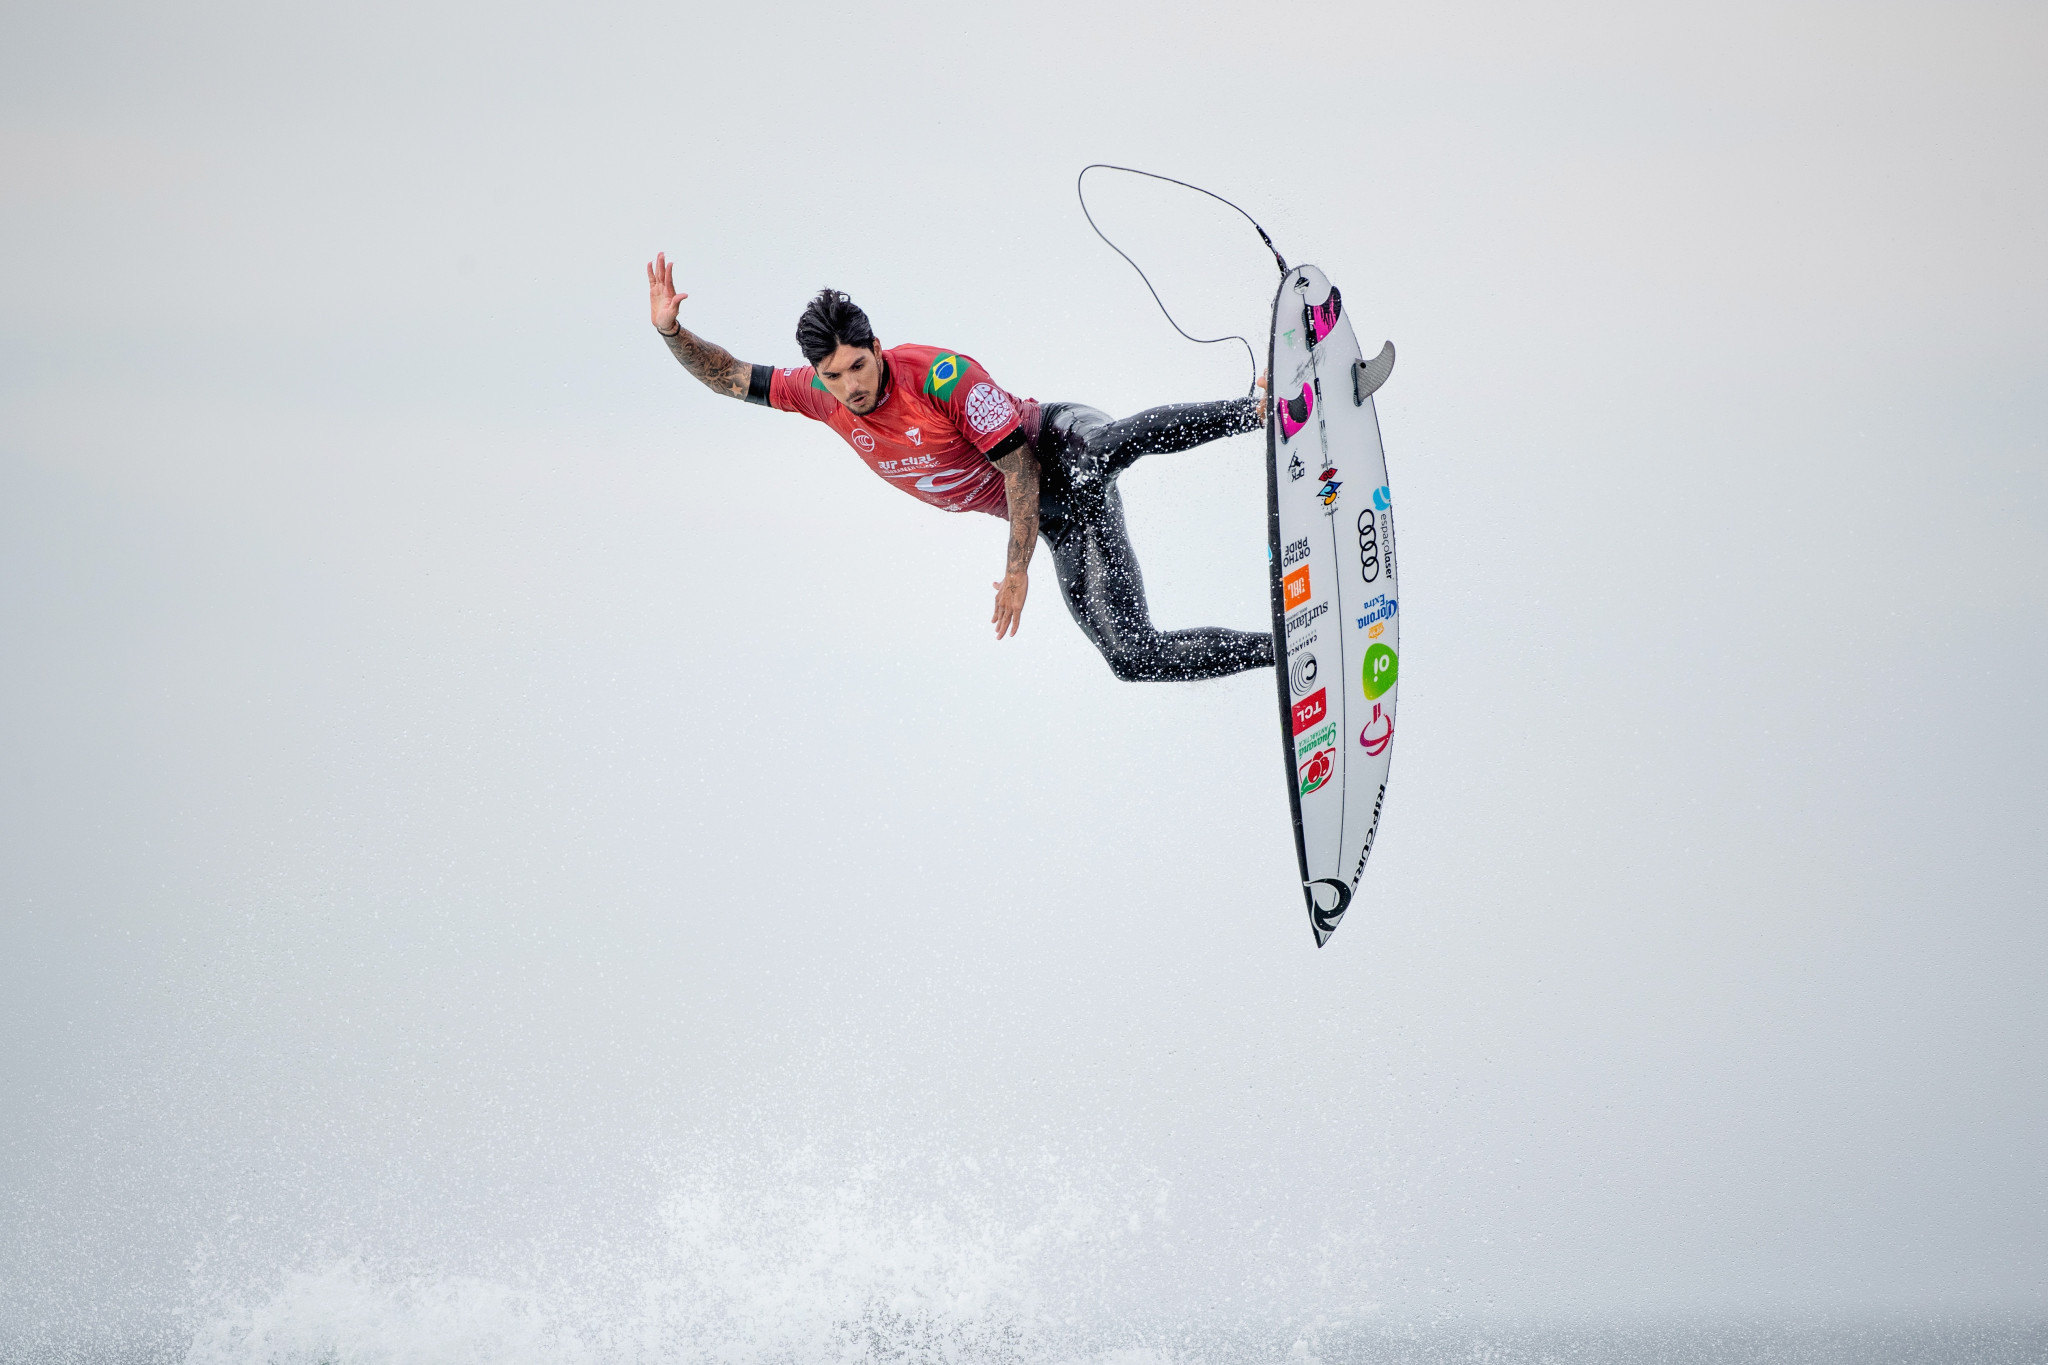 Medina and Moore hold leads heading into Margaret River World Surf League